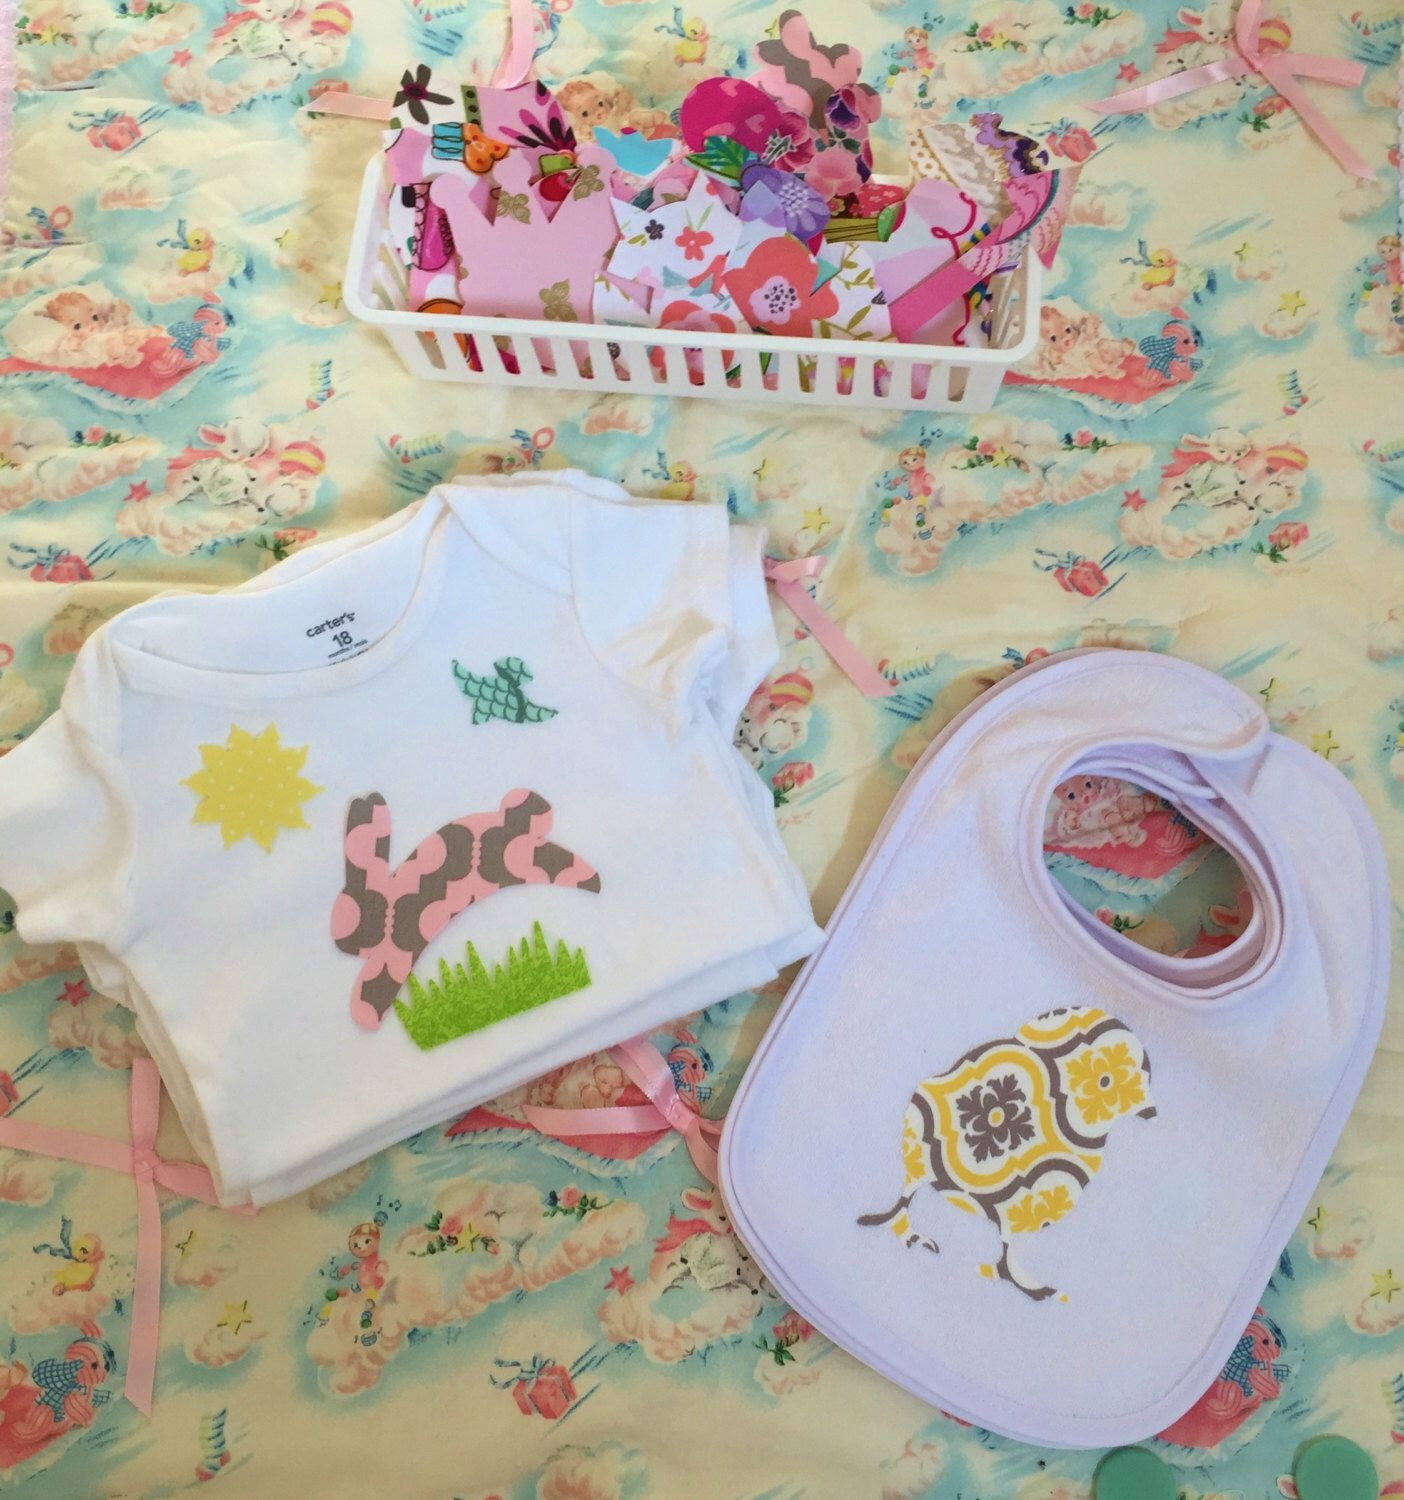 25 Guest Baby Shower Kit, 45 Appliques, Bibs And Onesies Kit, Baby Girl